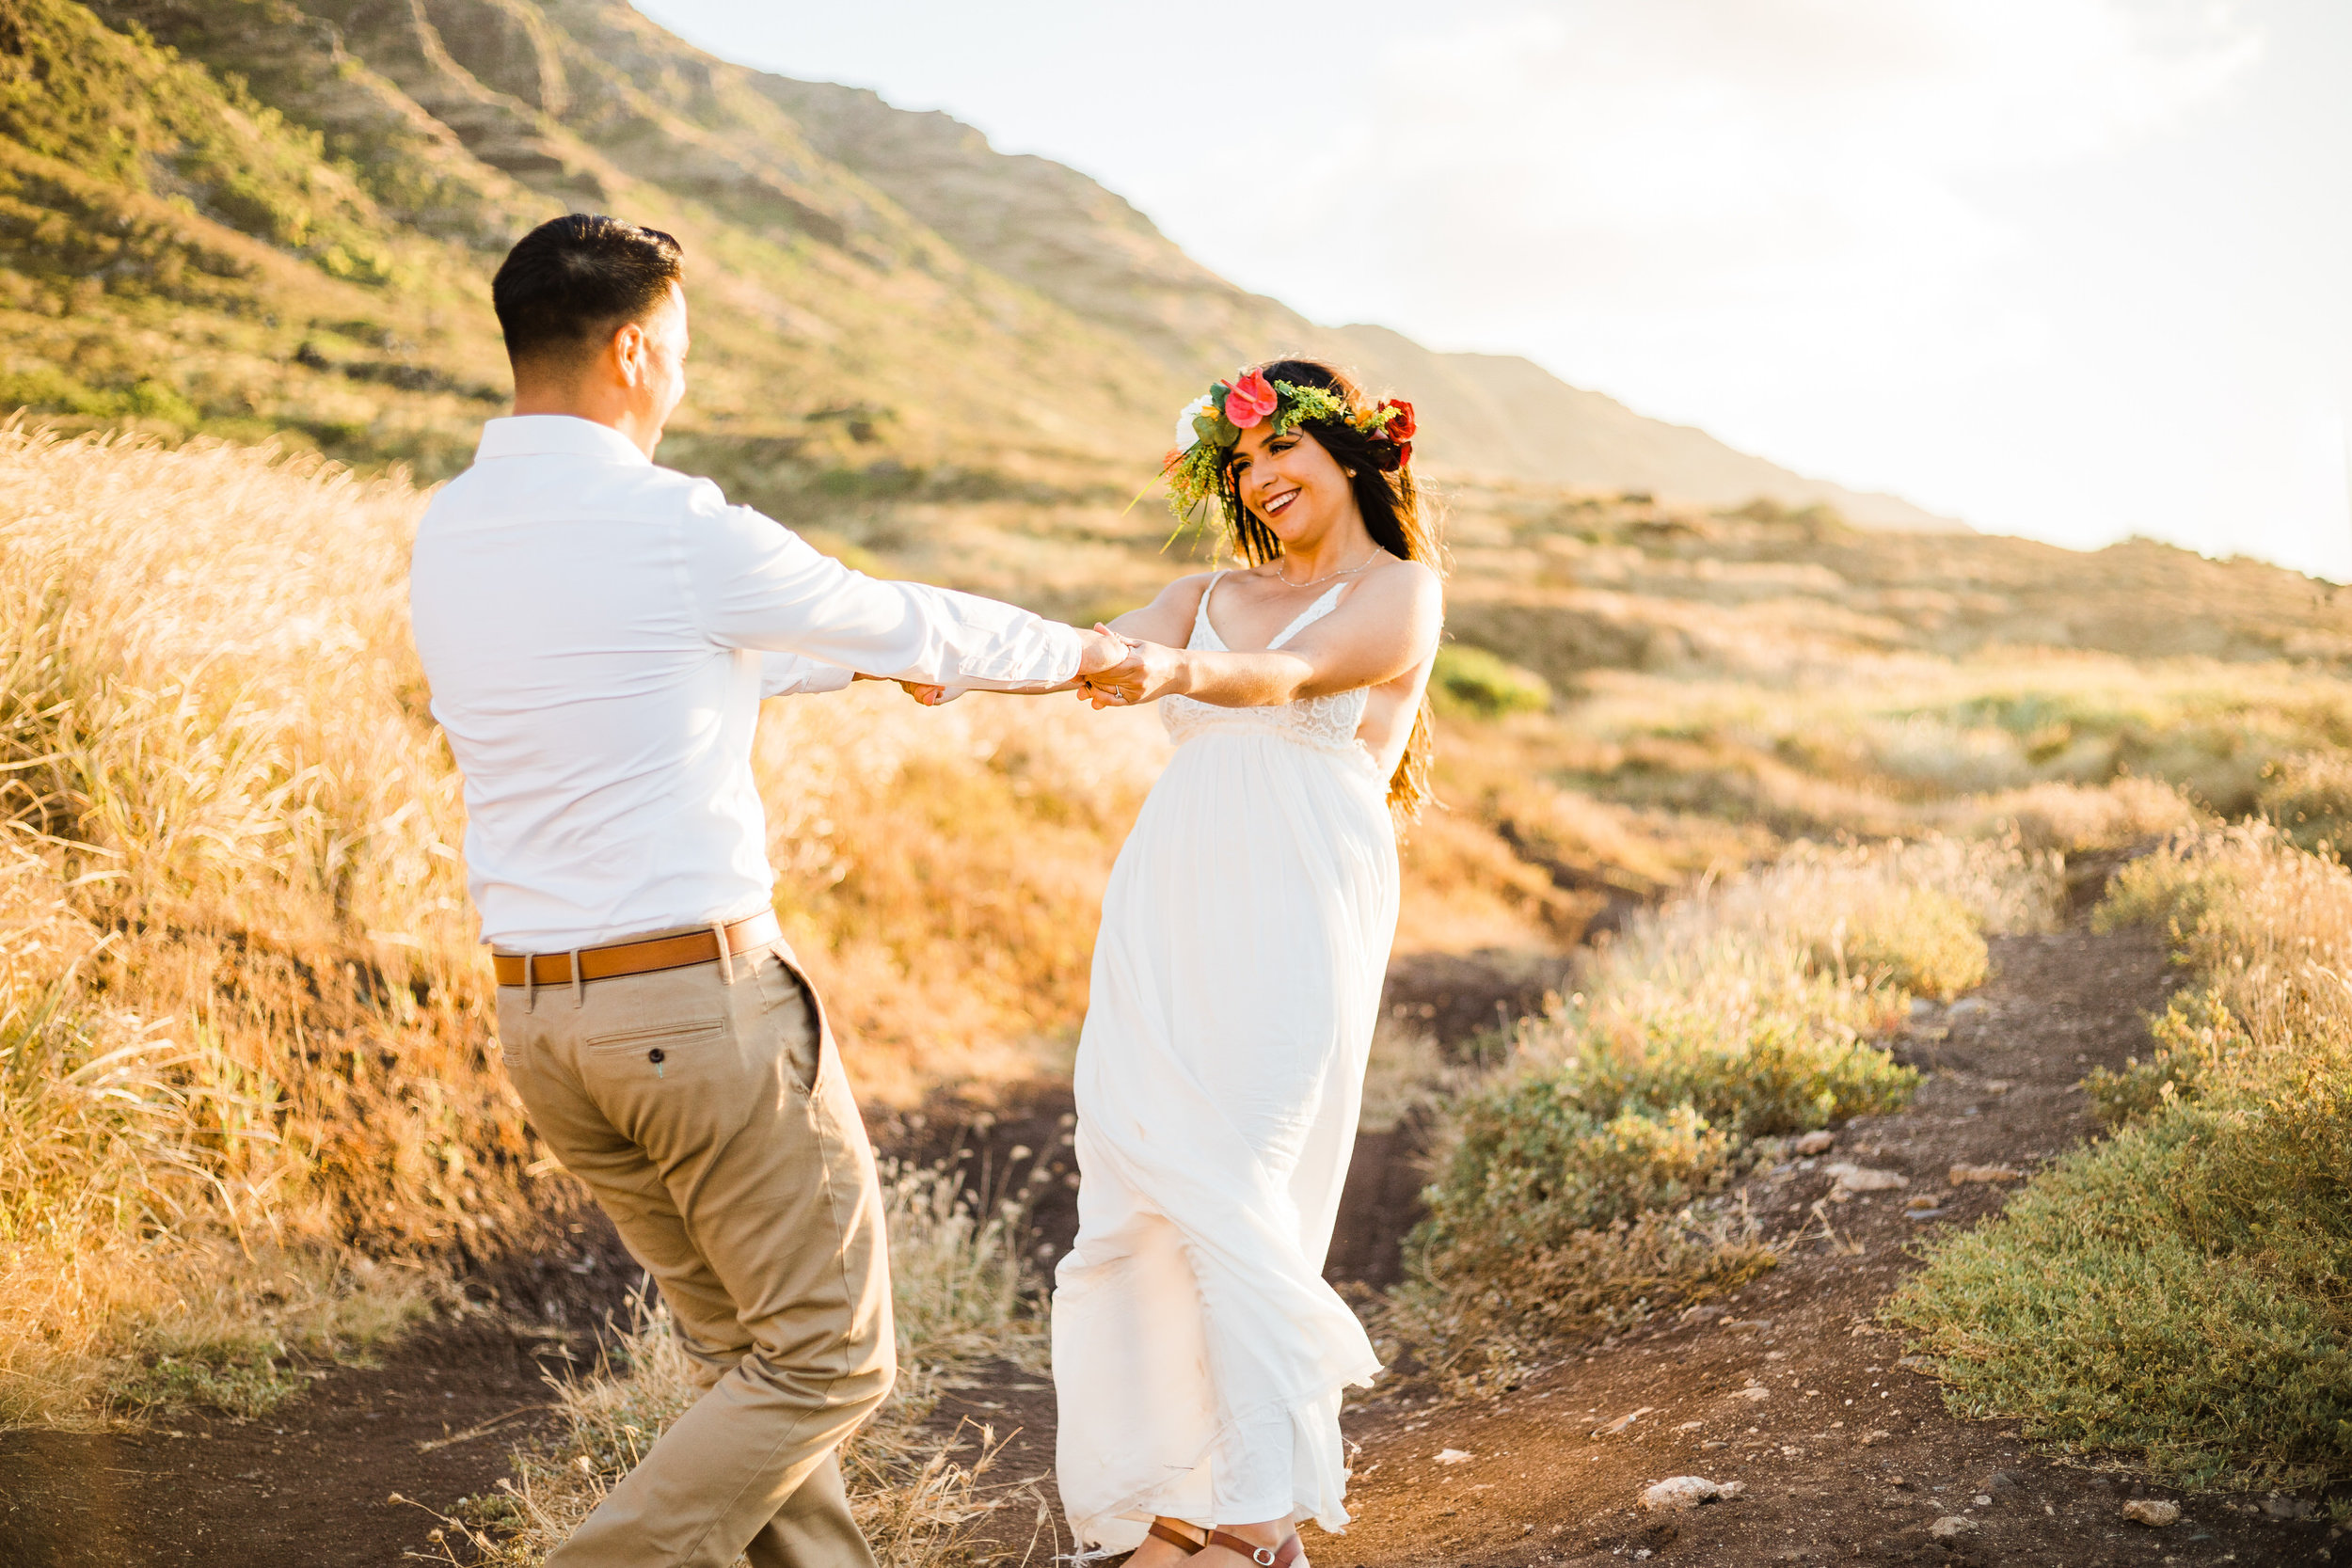 intimate-elopement-sunset-oahu-haku-15.jpg